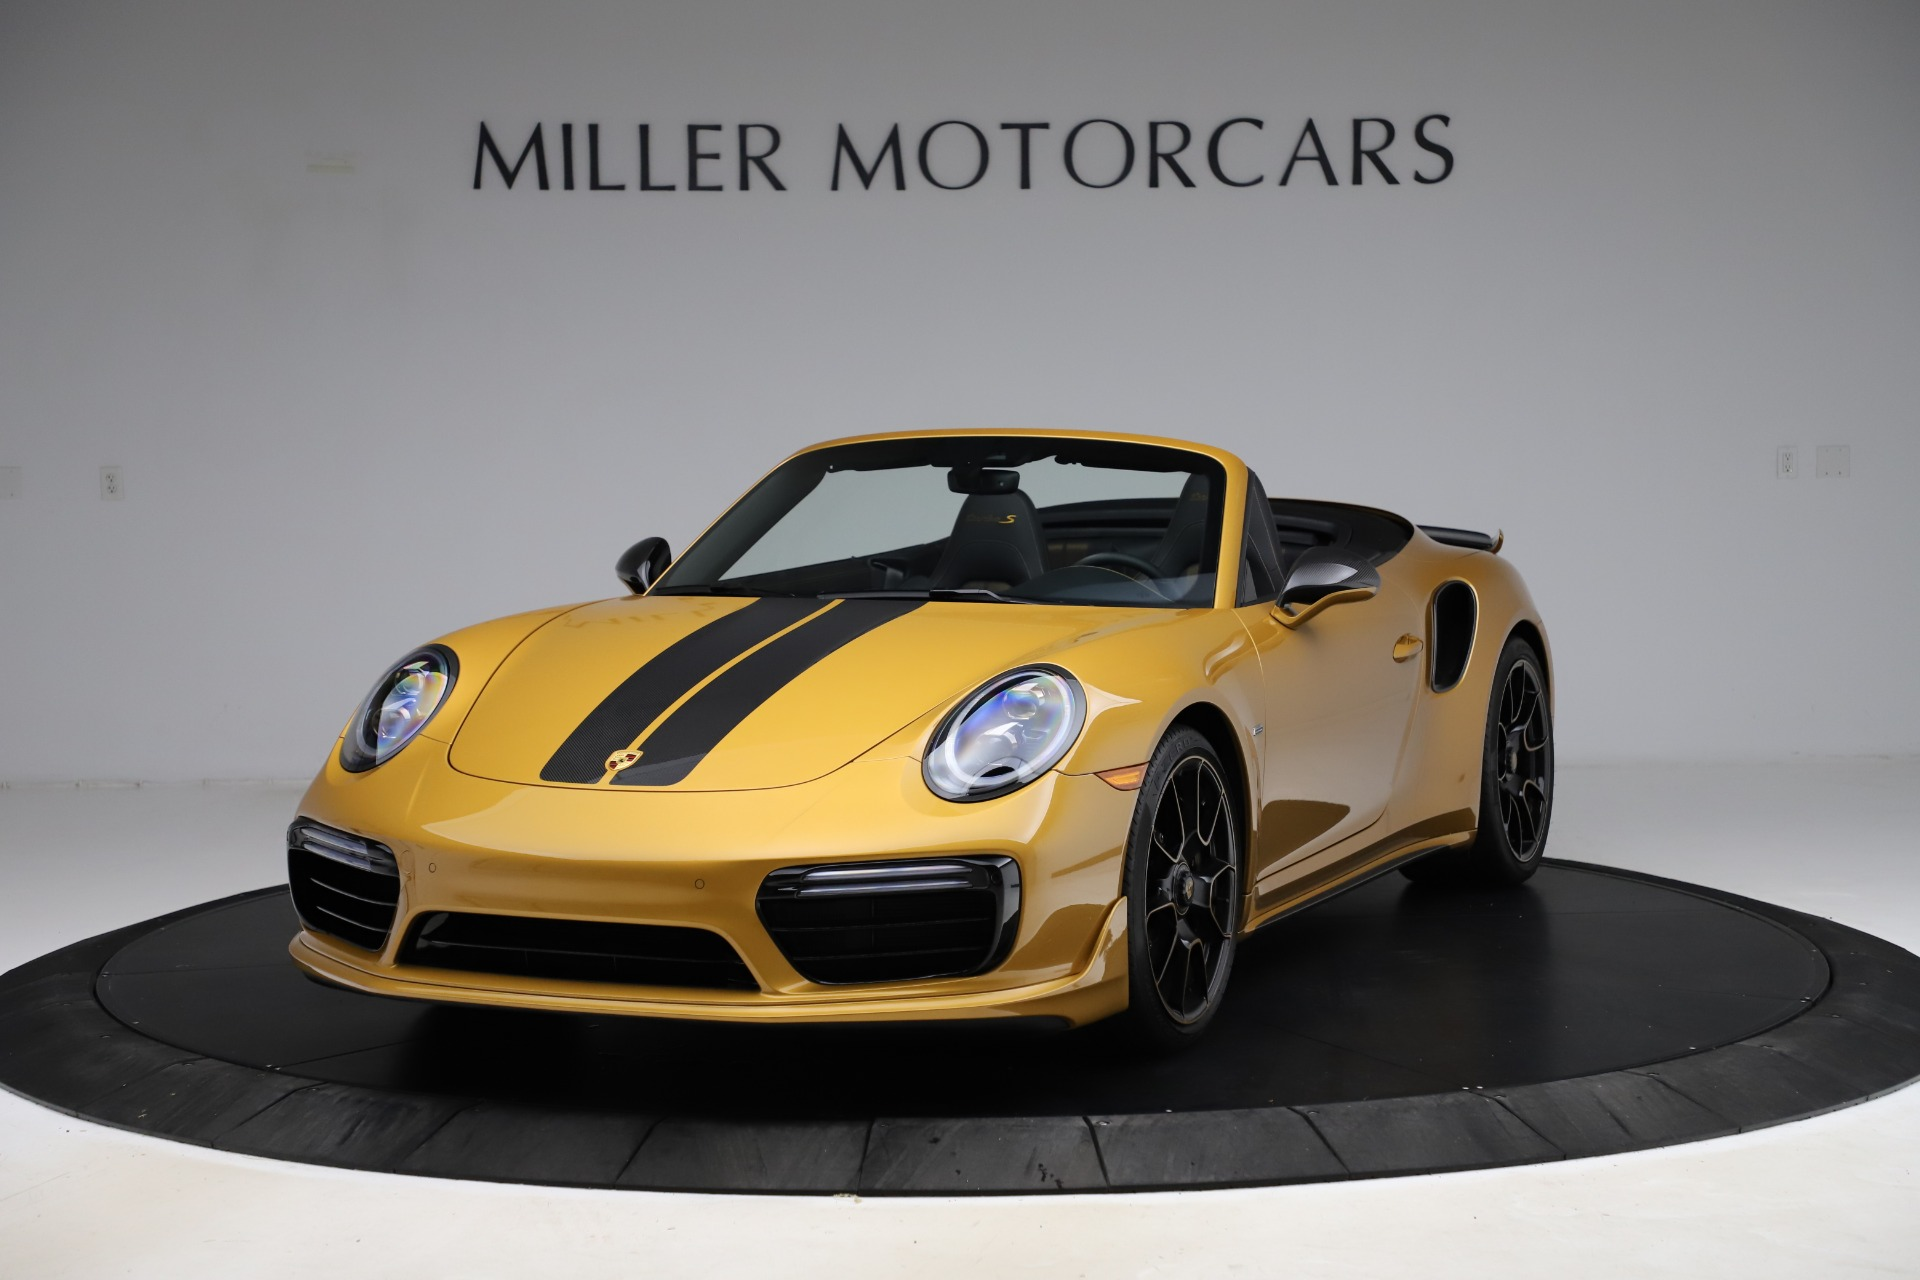 Used 2019 Porsche 911 Turbo S Exclusive for sale $249,900 at Bentley Greenwich in Greenwich CT 06830 1